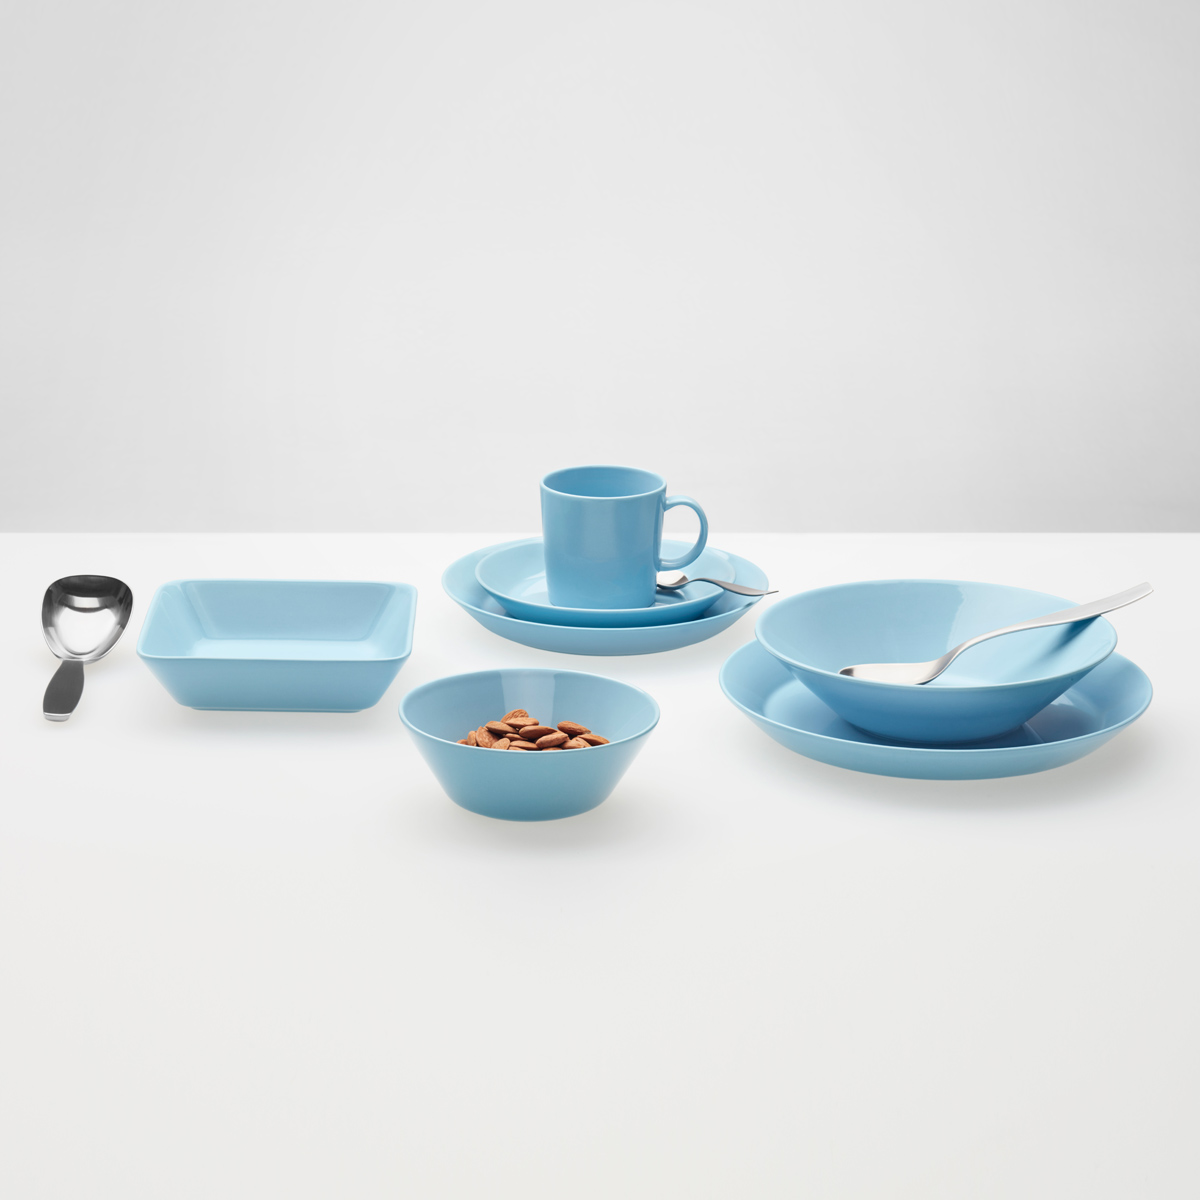 iittala Teema Light Blue Mug & iittala Teema Light Blue Mug - iittala Teema Light Blue Dinnerware